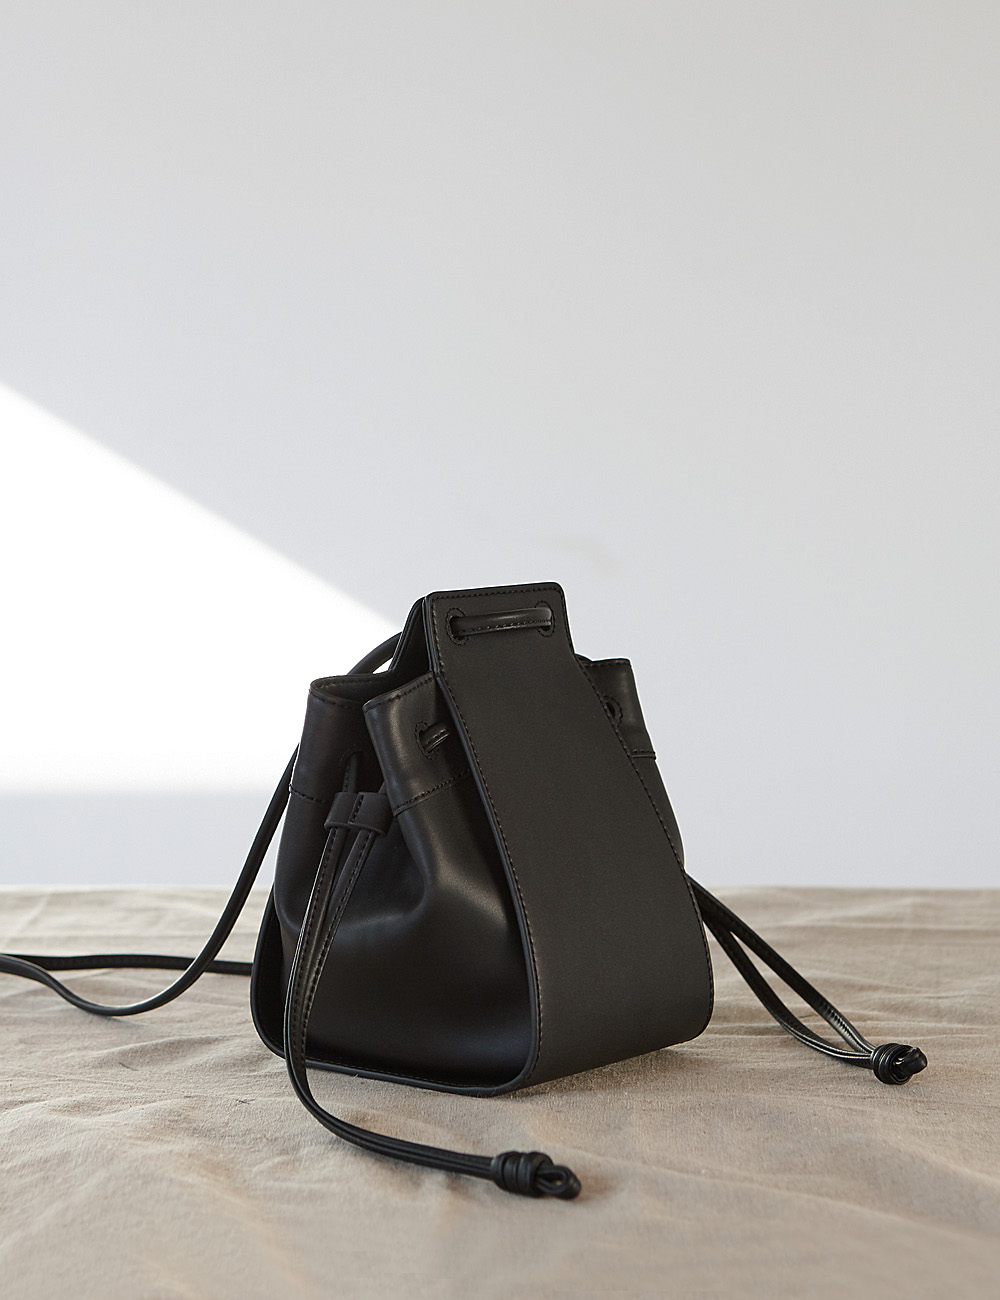 MAISON246,246 AME BAG - BLACK,No.246